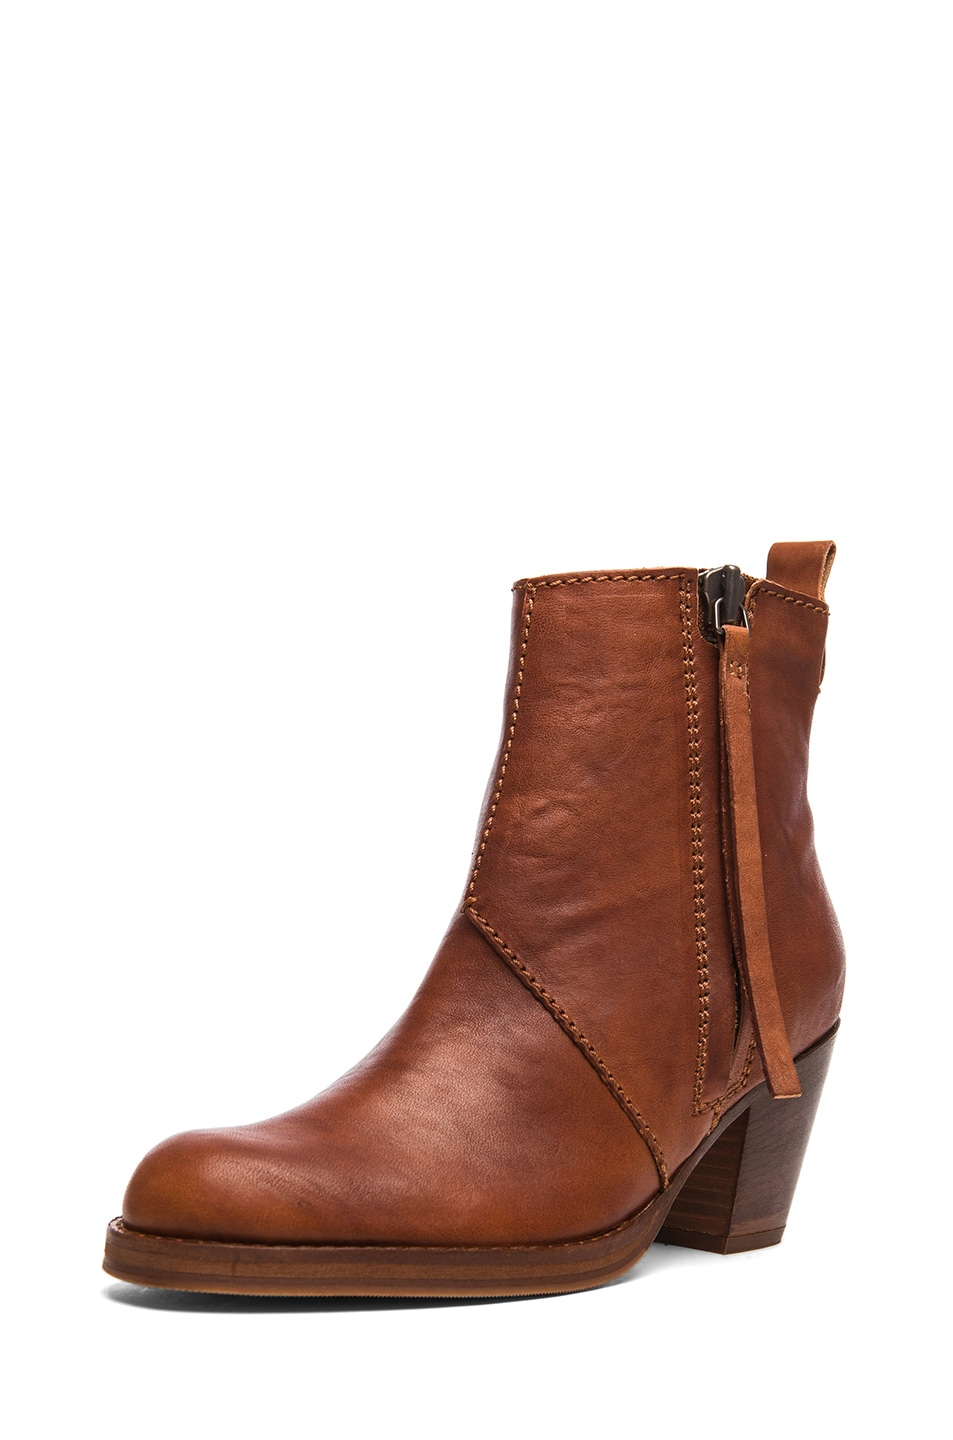 Image 2 of Acne Studios Pistol Leather Booties in Chestnut